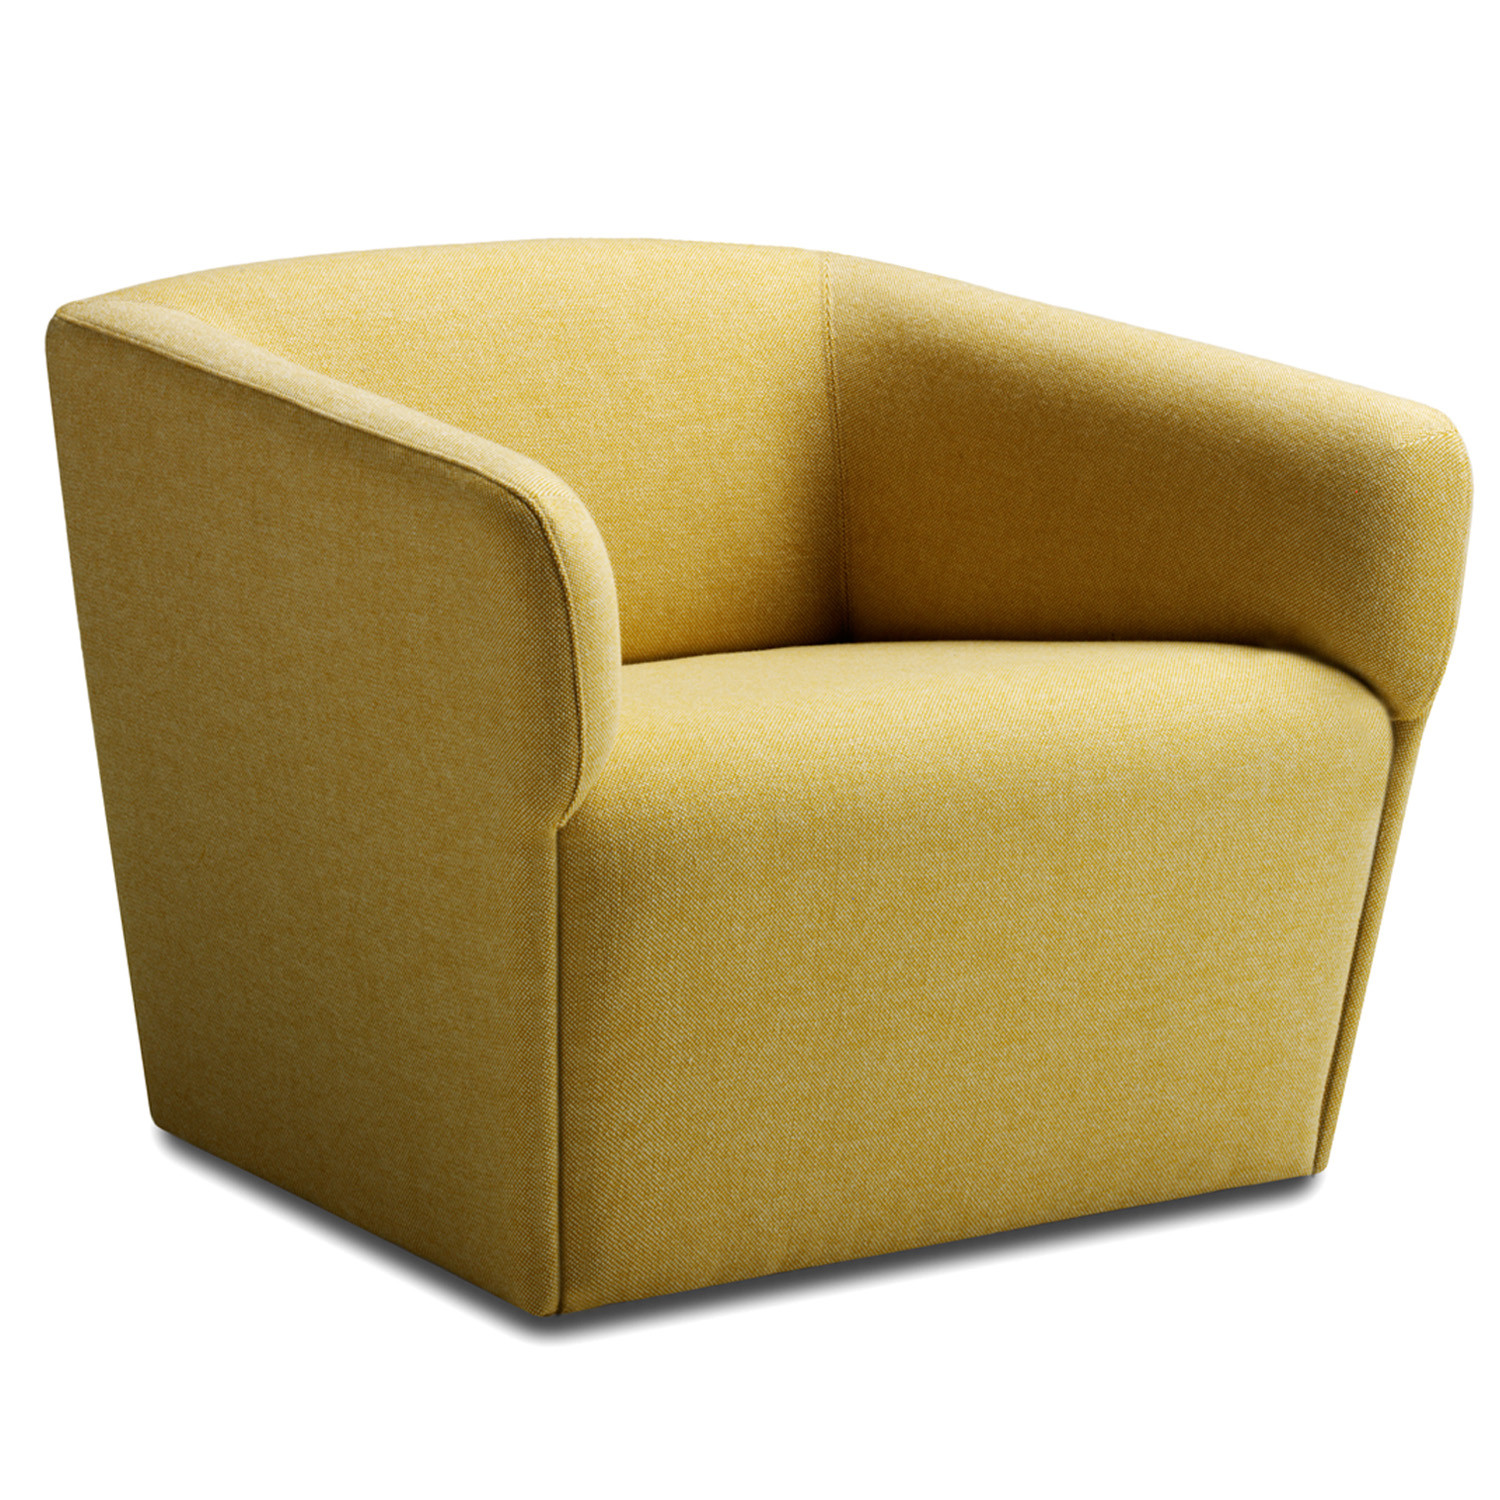 Tonic Lounge Easychair in Yellow